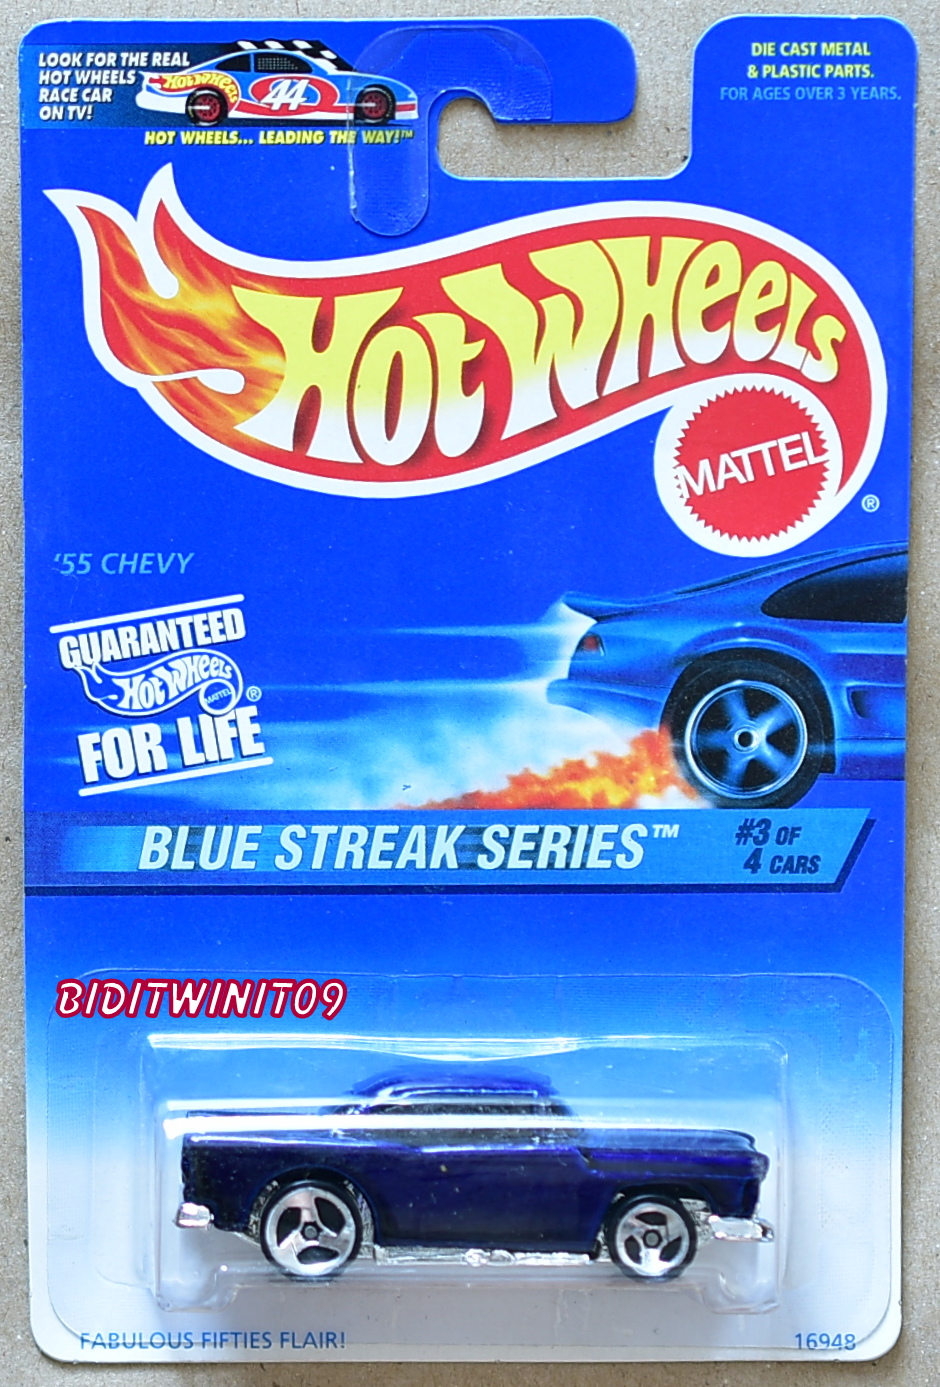 HOT WHEELS 1997 #3/4 BLUE STREAK SERIES 55 CHEVY